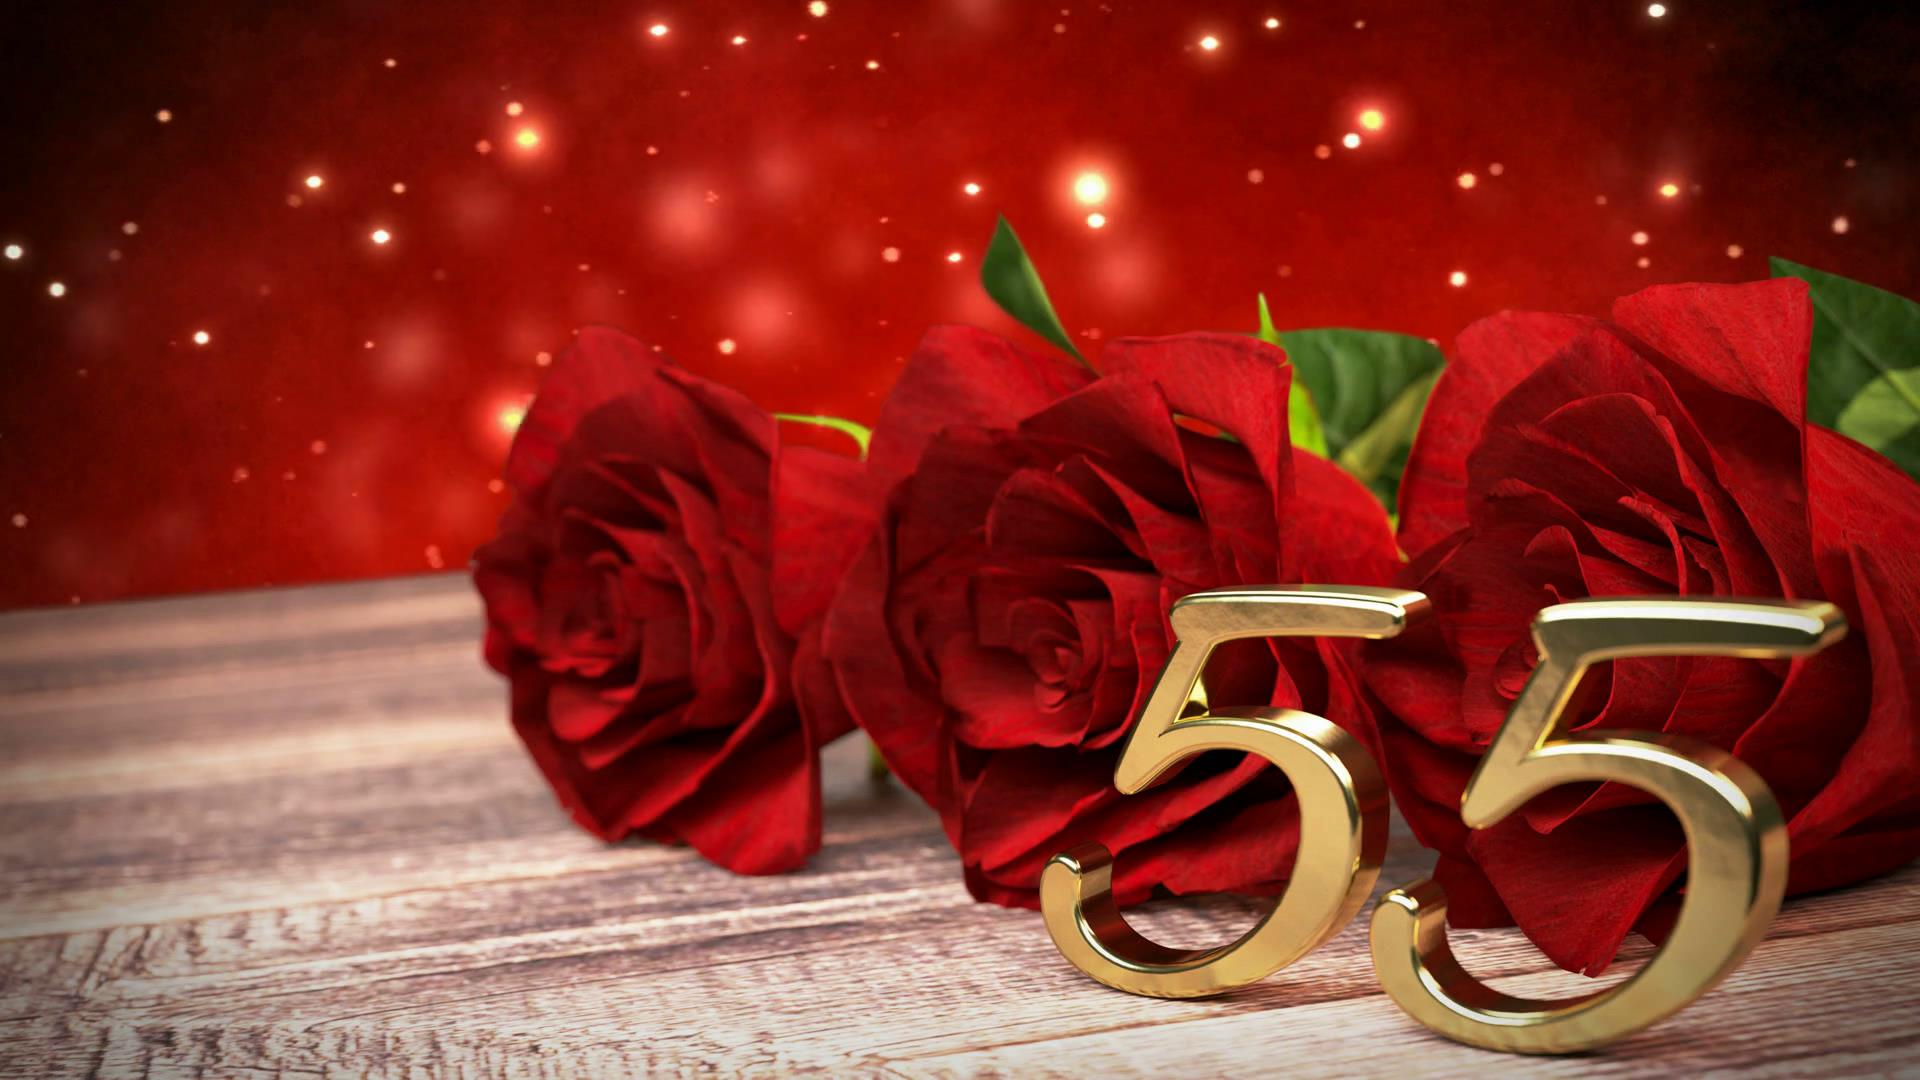 40th birthday background images ; seamless-loop-birthday-background-with-red-roses-on-wooden-desk-fiftyfifth-birthday-55th-3d-render_sighn2k9ug_thumbnail-full01